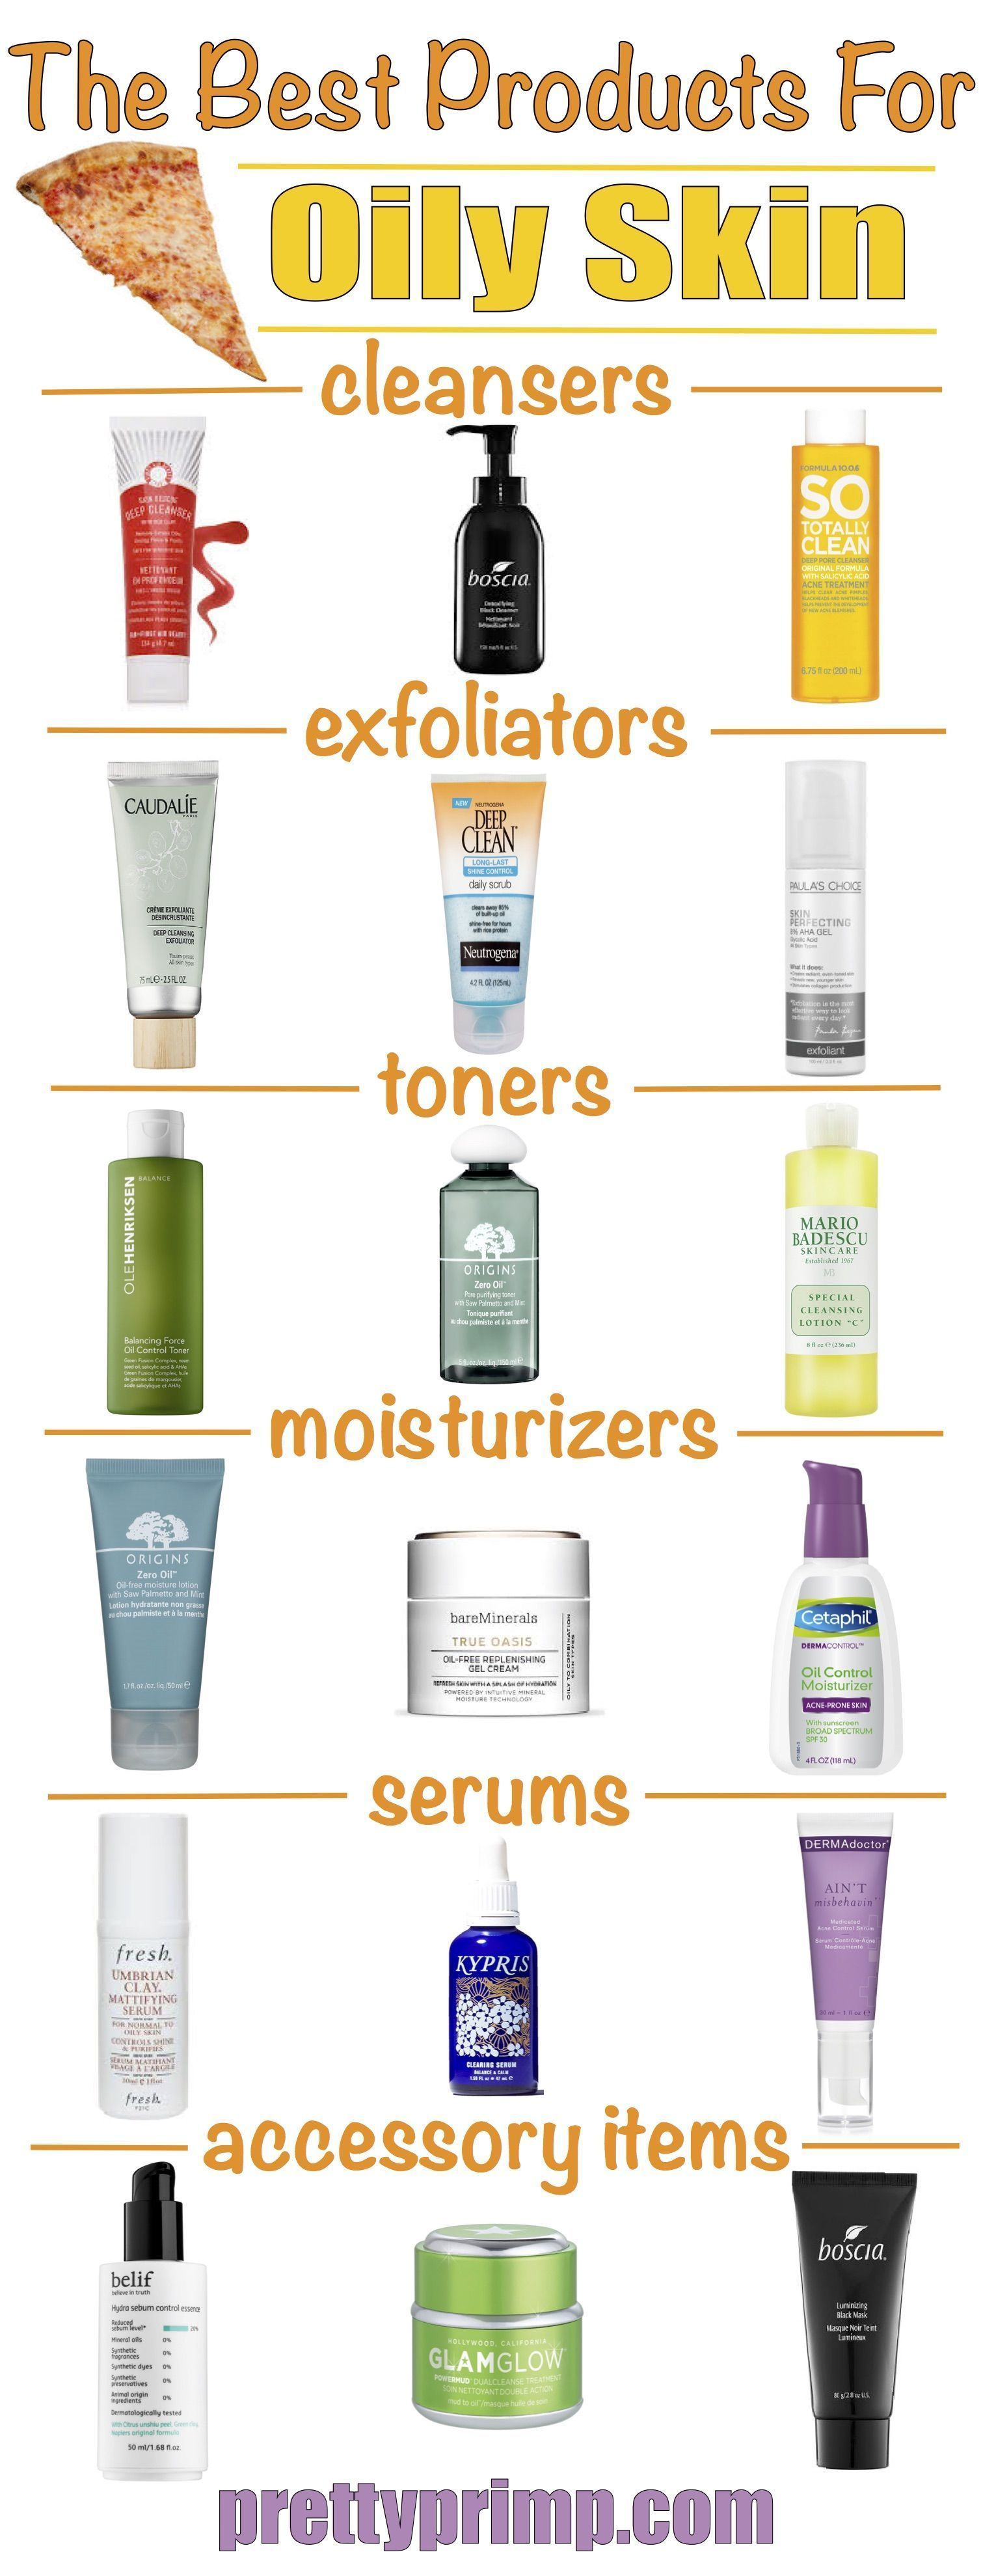 Skincare For Oily Skin Including The Best Drugstore And High End Products Specifically Skin Cleanser Products Skincare For Oily Skin Cleanser For Oily Skin